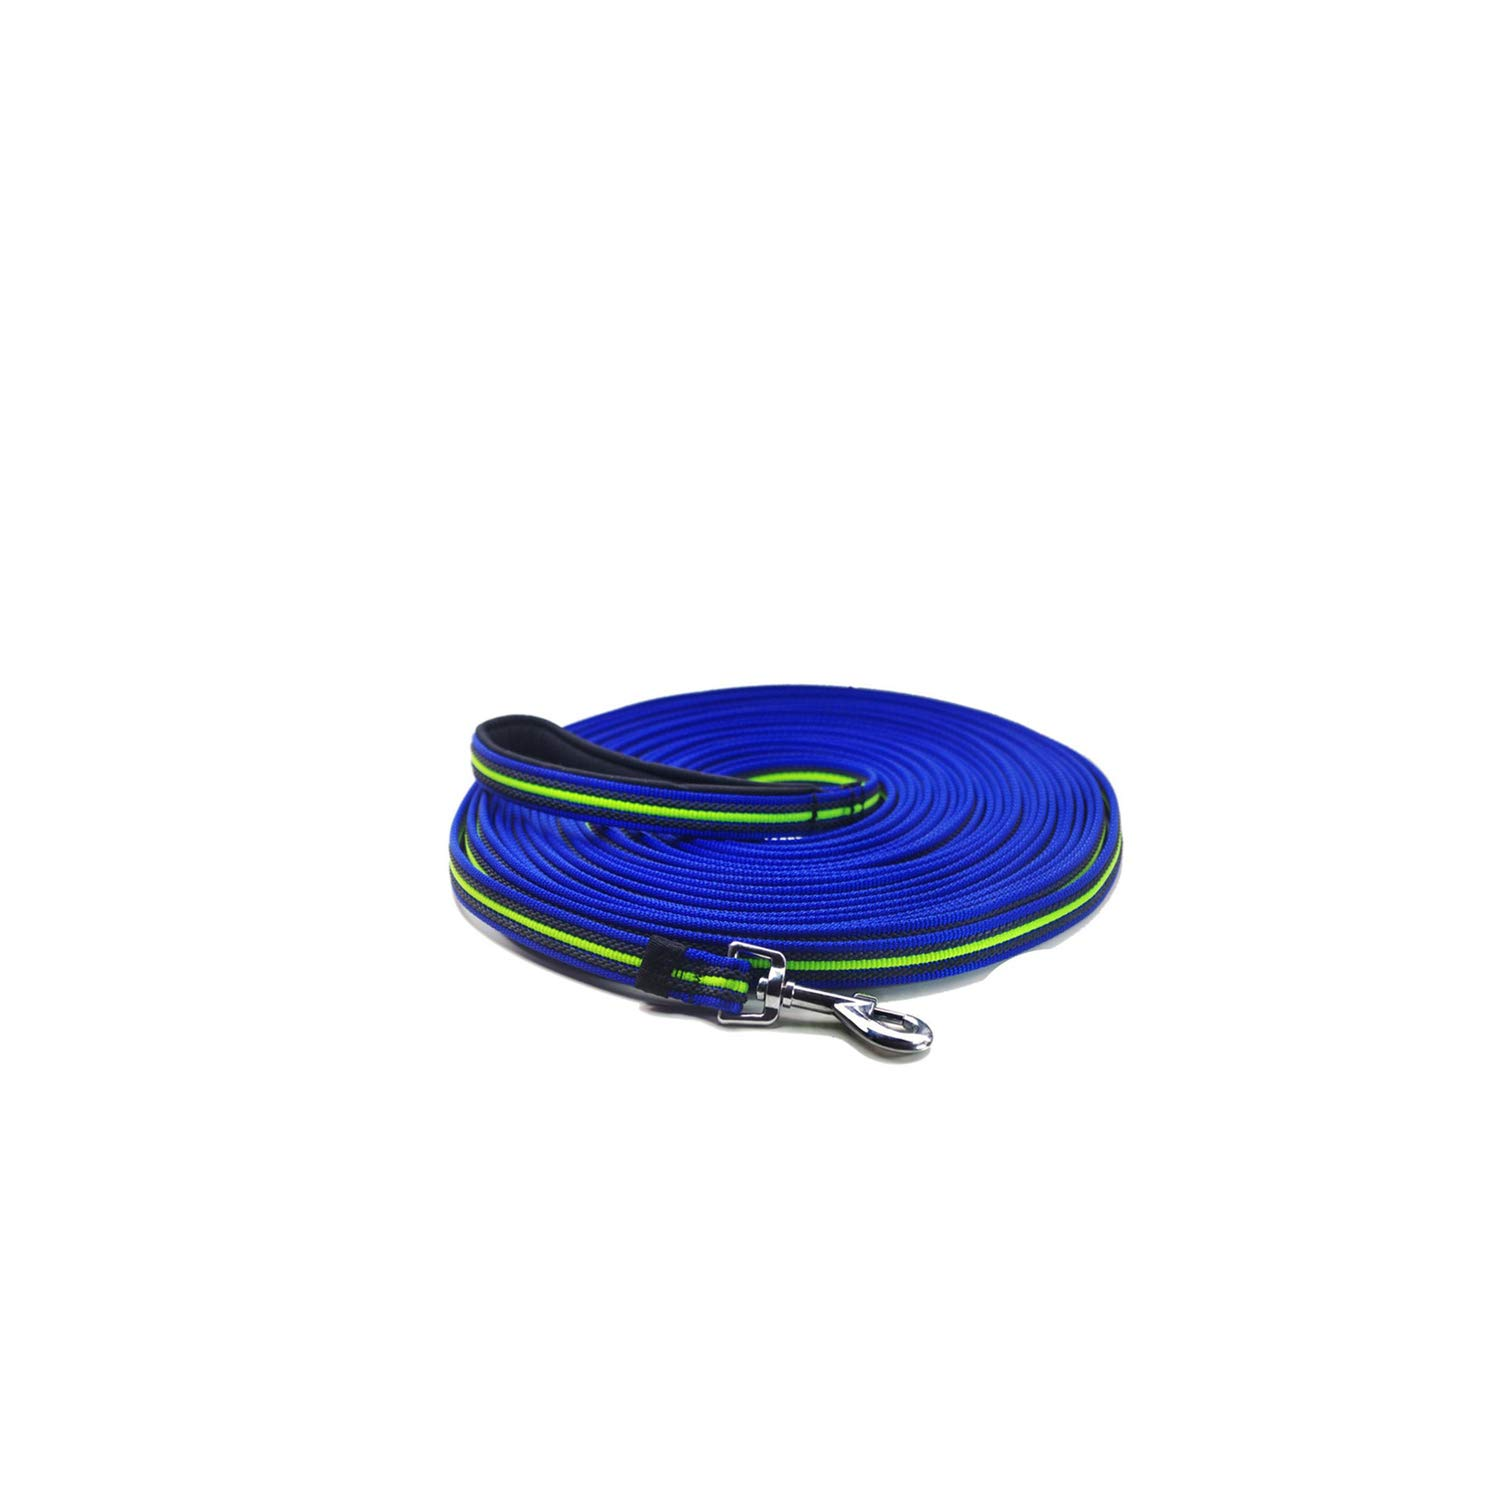 Durable Dog leashes with Padded Handle 1.8m to 15m Dog Tracking/Training Lead Leash Non-Slip Design for Any Dogs,Blue,5M